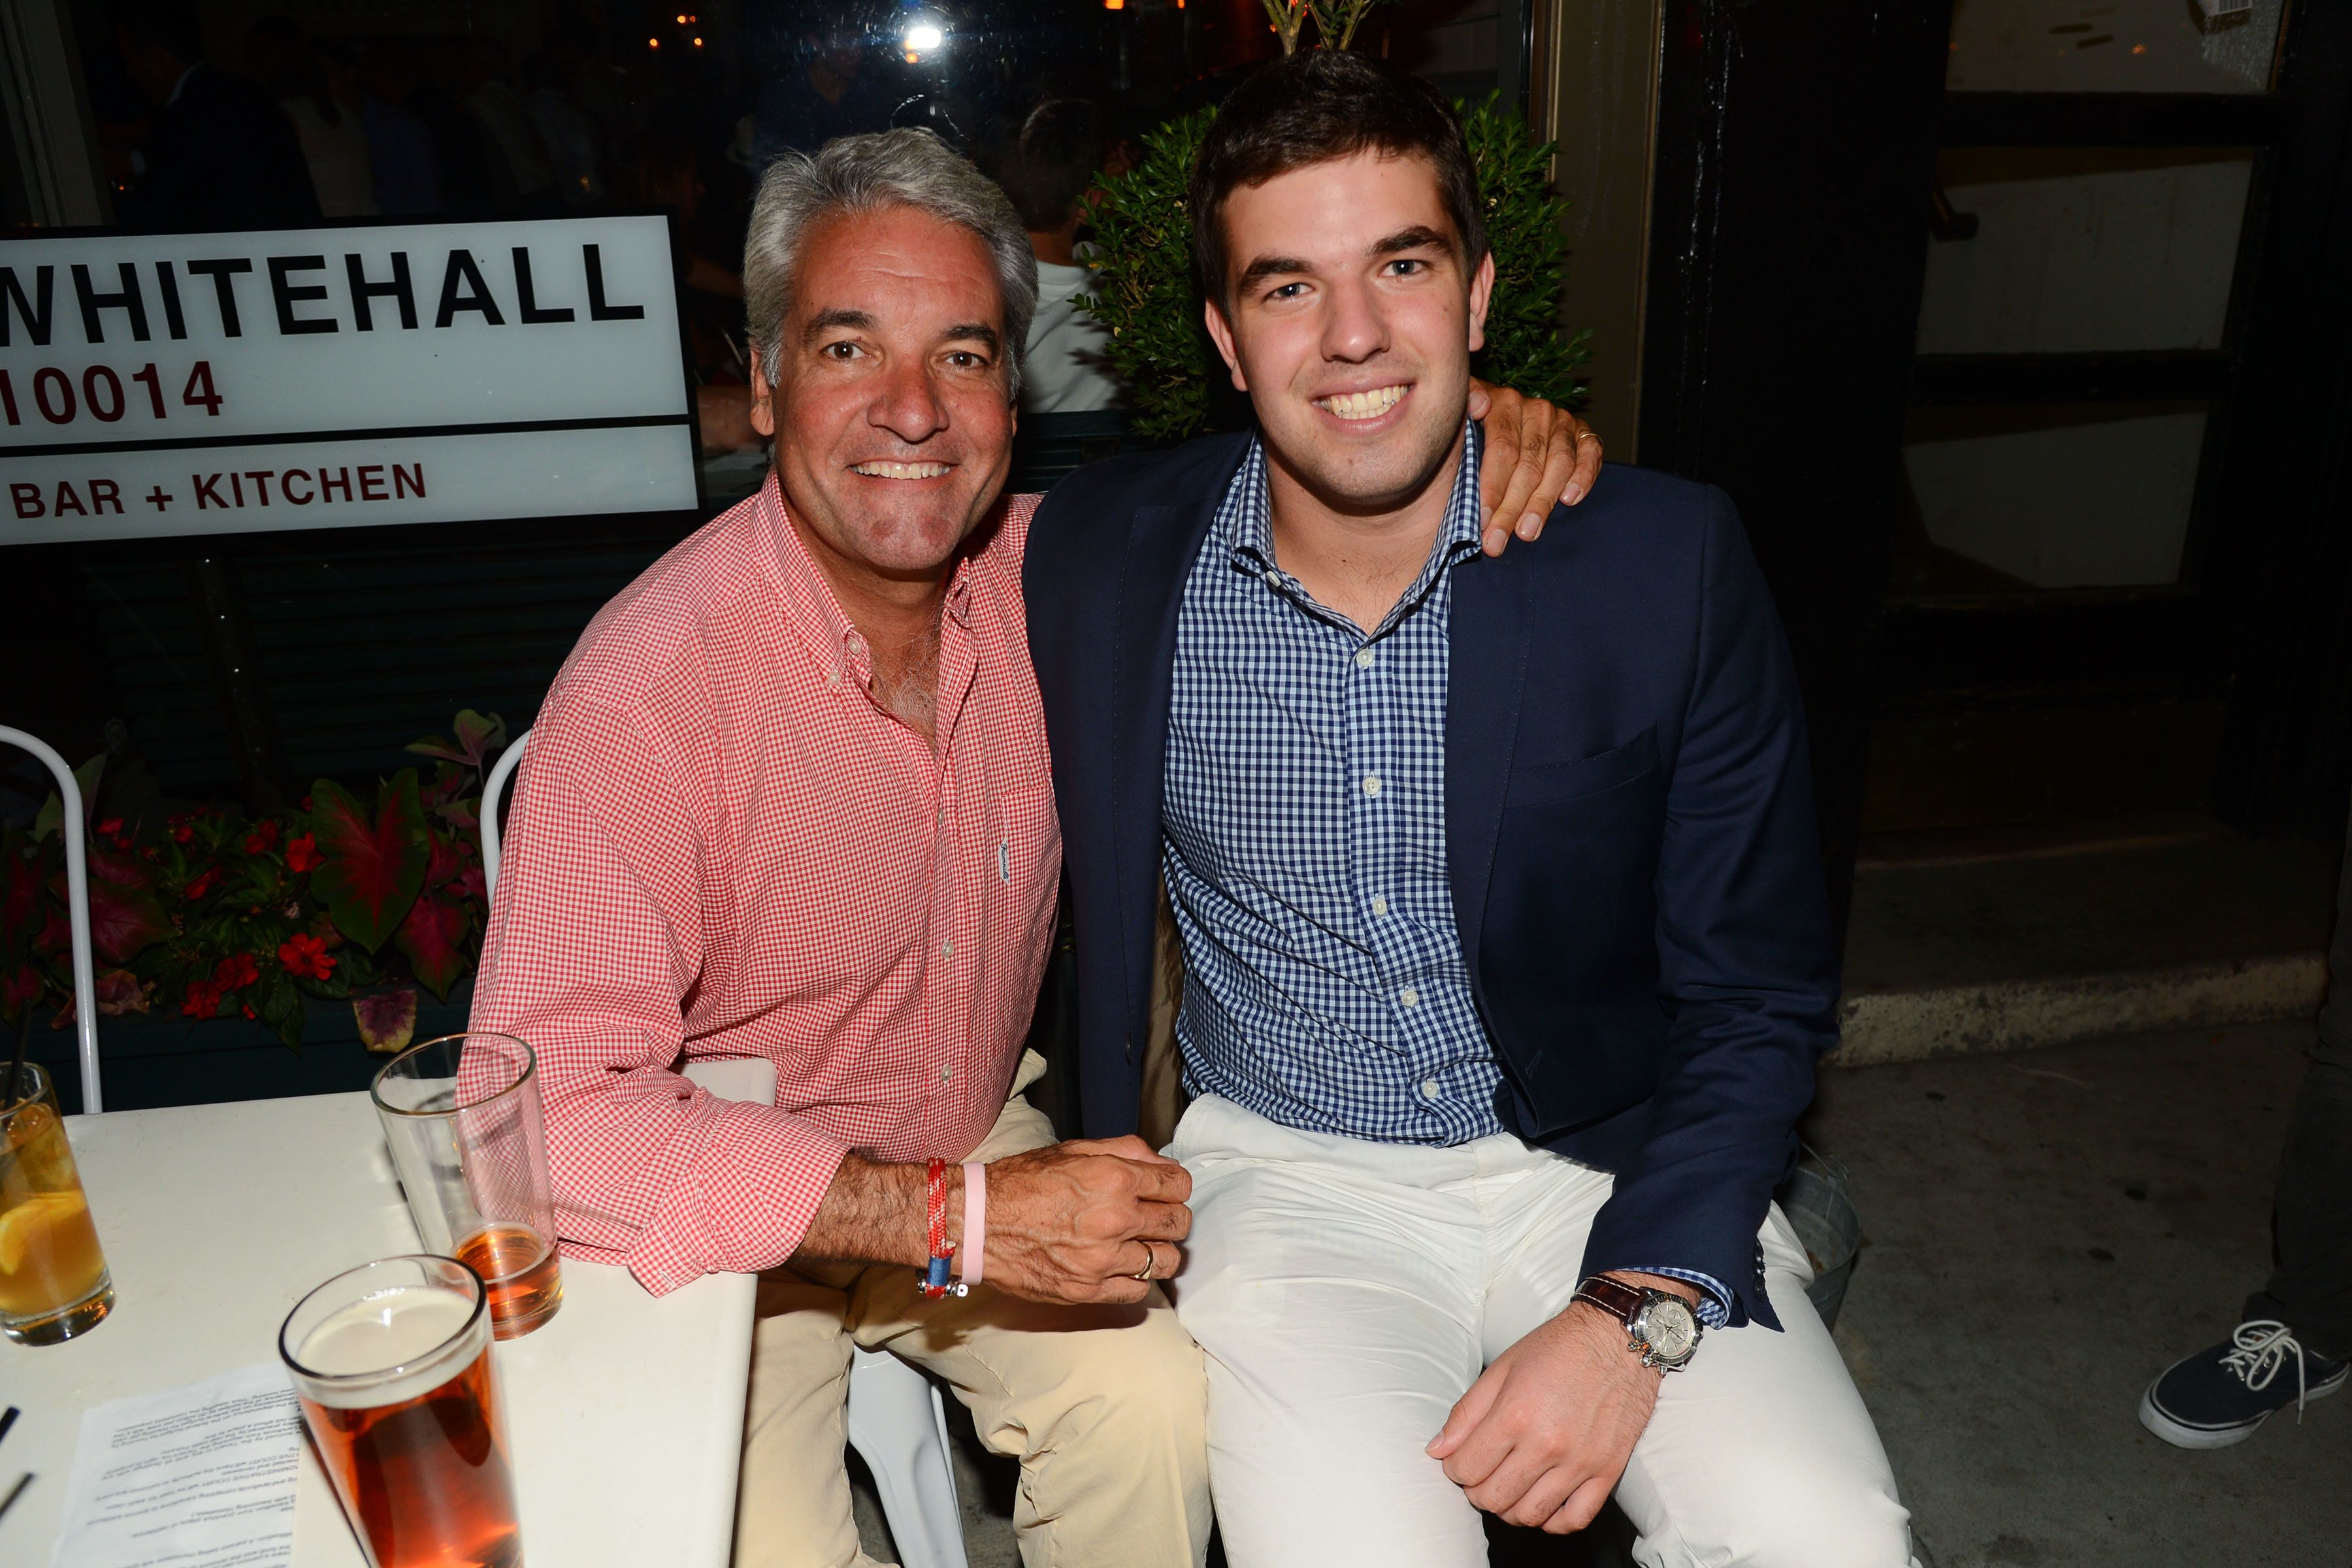 NEW YORK, NY - AUGUST 7: Andy King and Billy McFarland attend the Magnises Dinner Party at 22 Greenwich Ave on August 7, 2014 in New York City. (Photo by Patrick McMullan/Patrick McMullan via Getty Images)